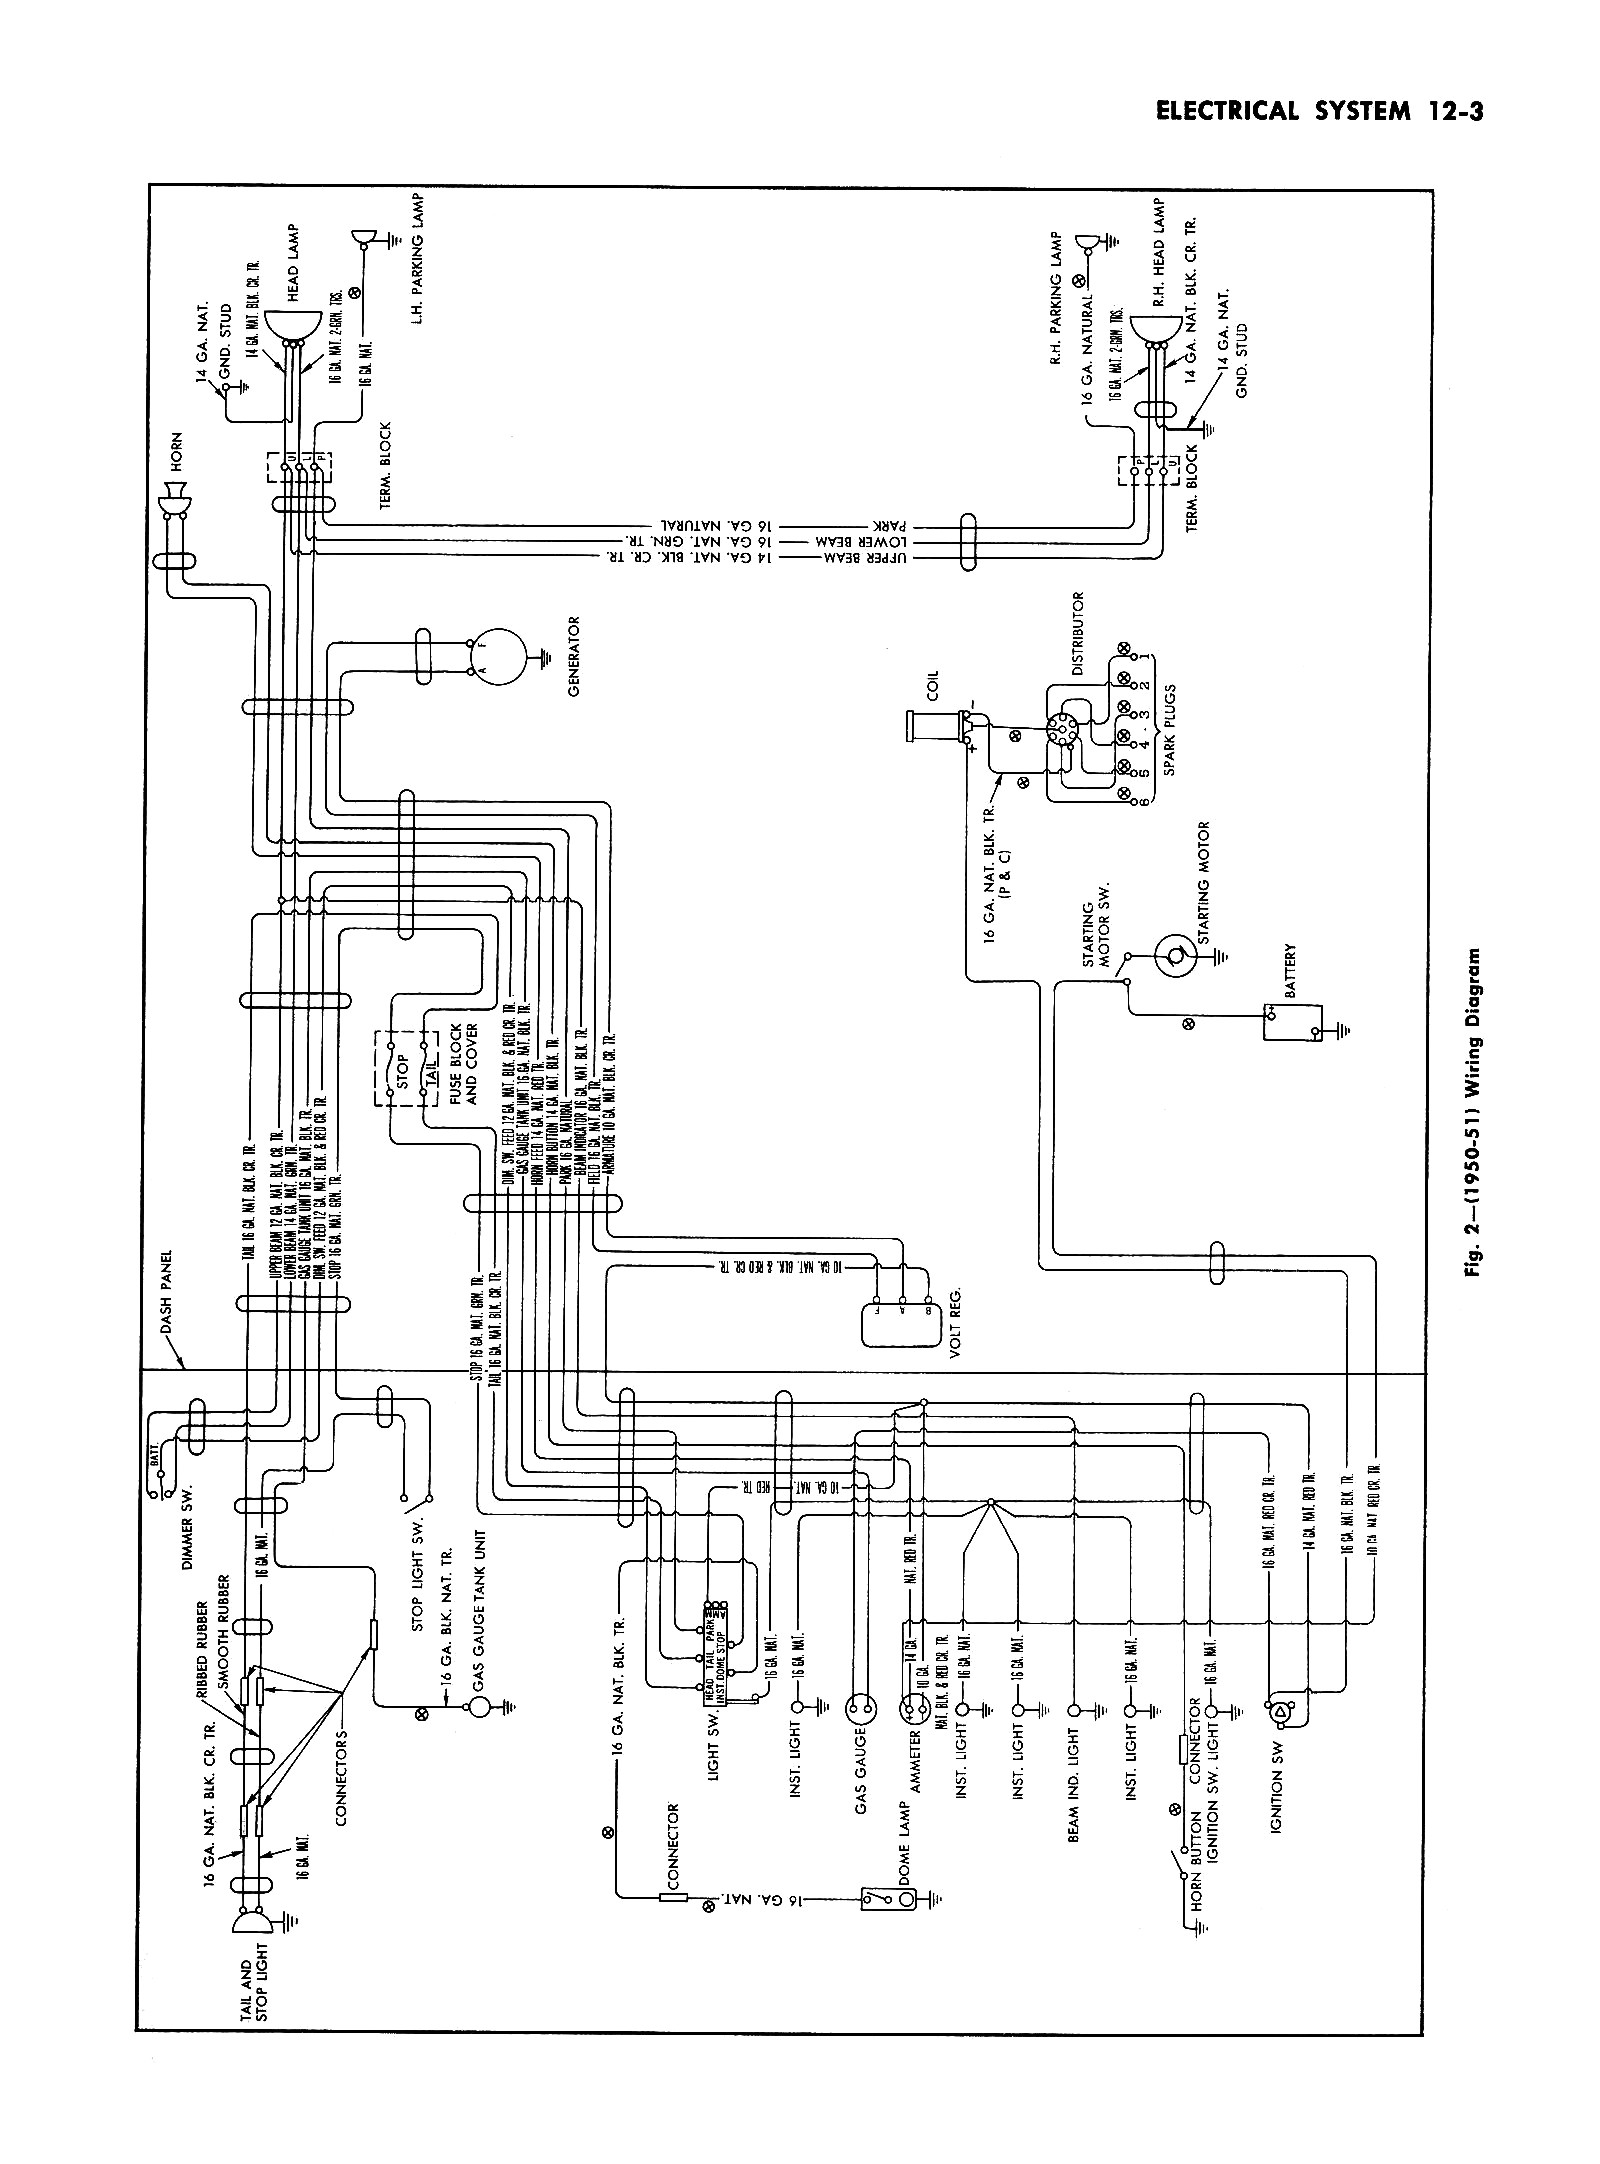 hight resolution of 48 chevy wiring diagram wiring diagram third level 50 ford truck 48 chevy wiring diagram wiring